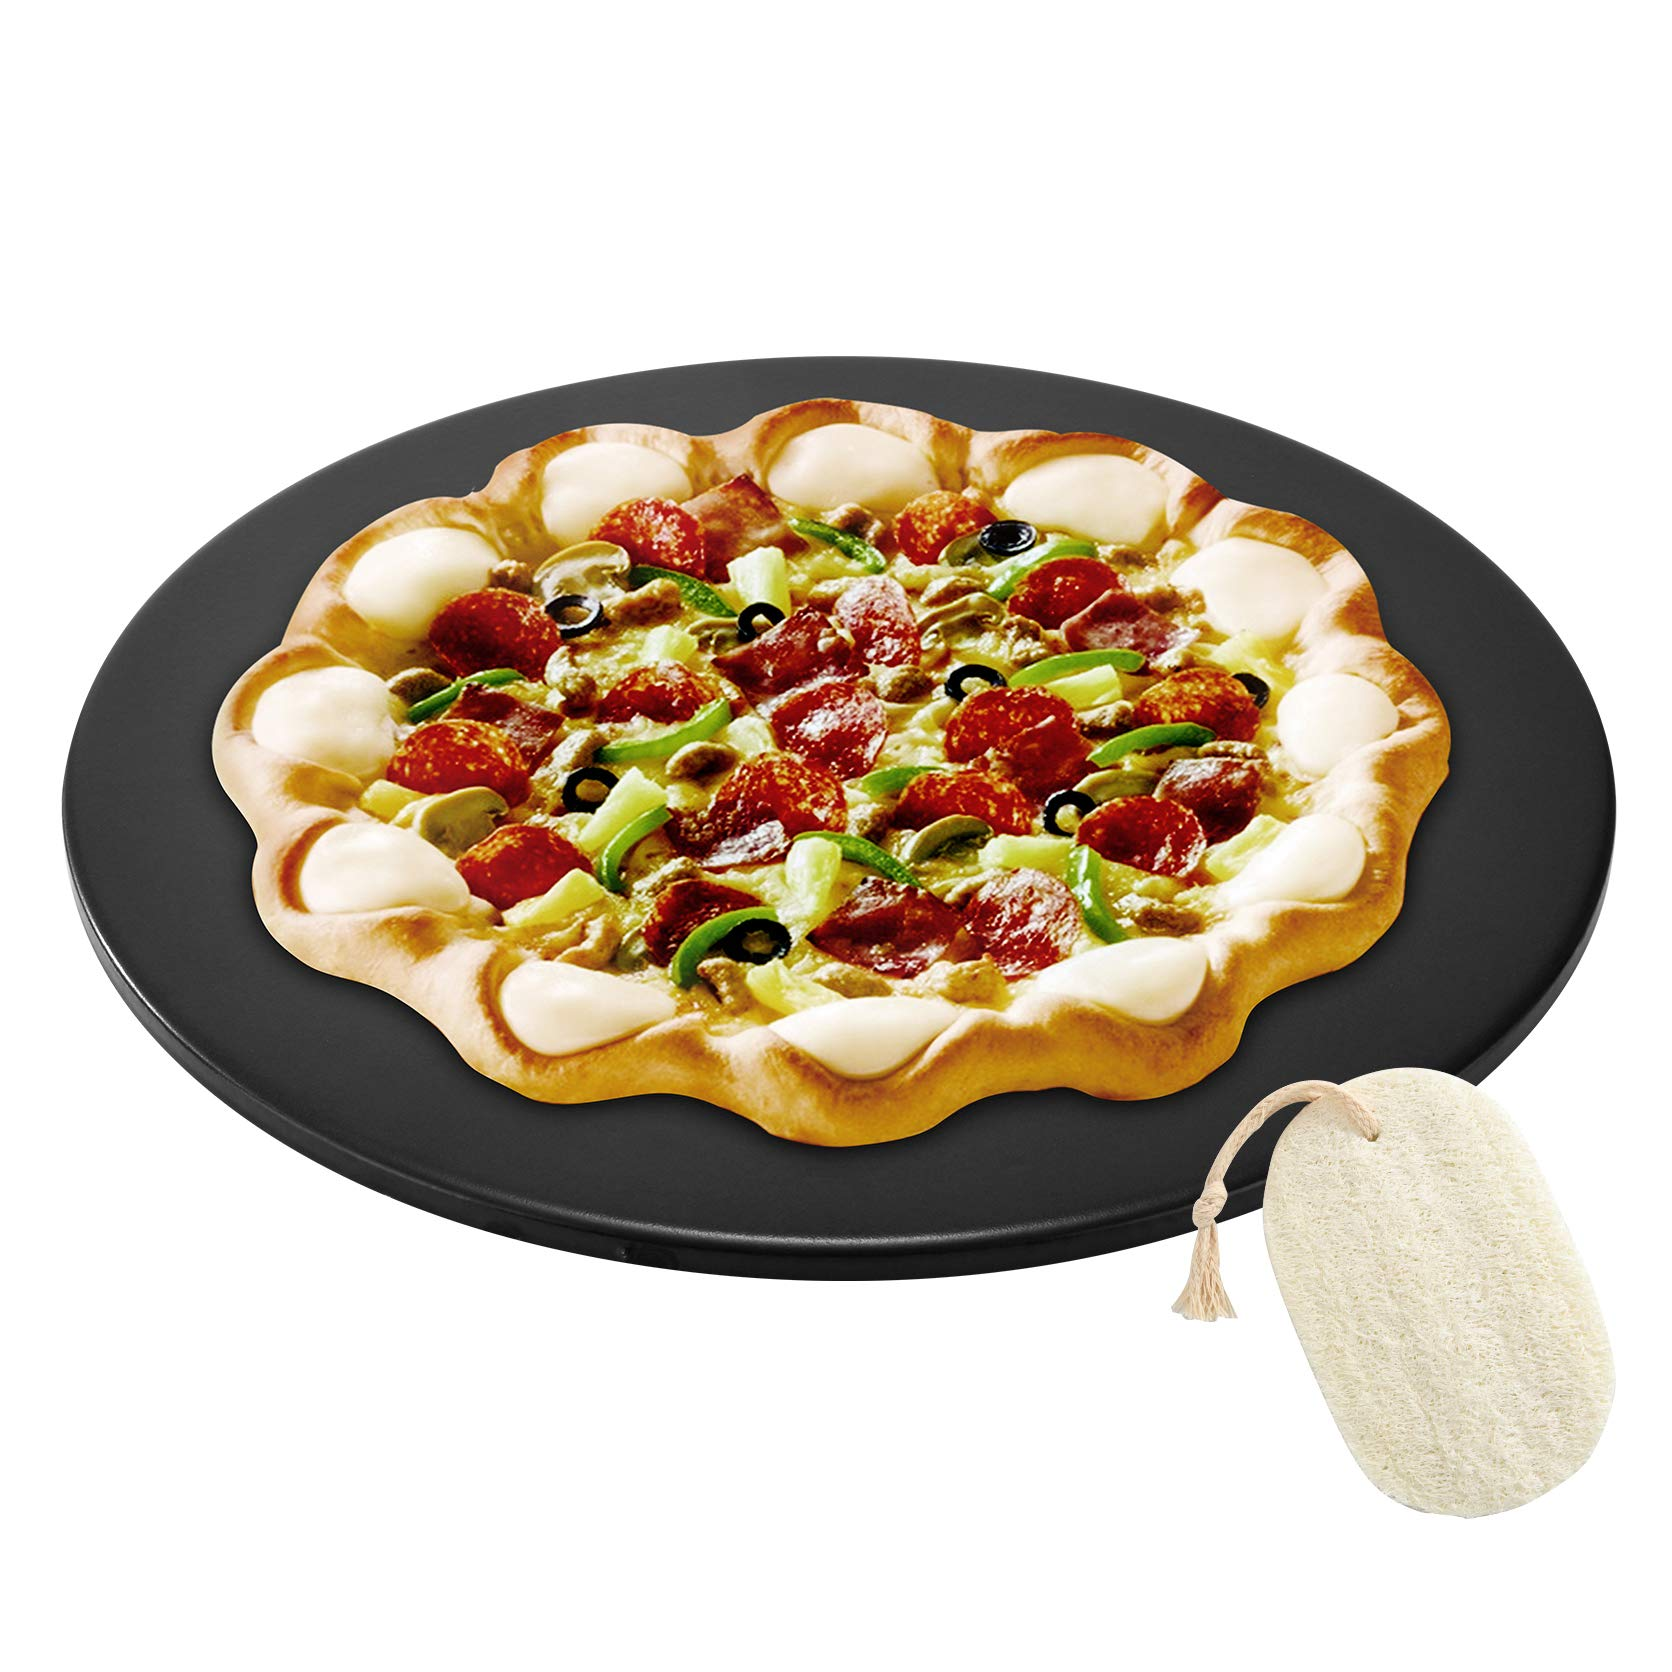 GOVOG Pizza Stone for Oven Grill Black Glaze BBQ Baking Stone Round Ceramic with Cutter Handle Set Non-Stain, 15X2/5''